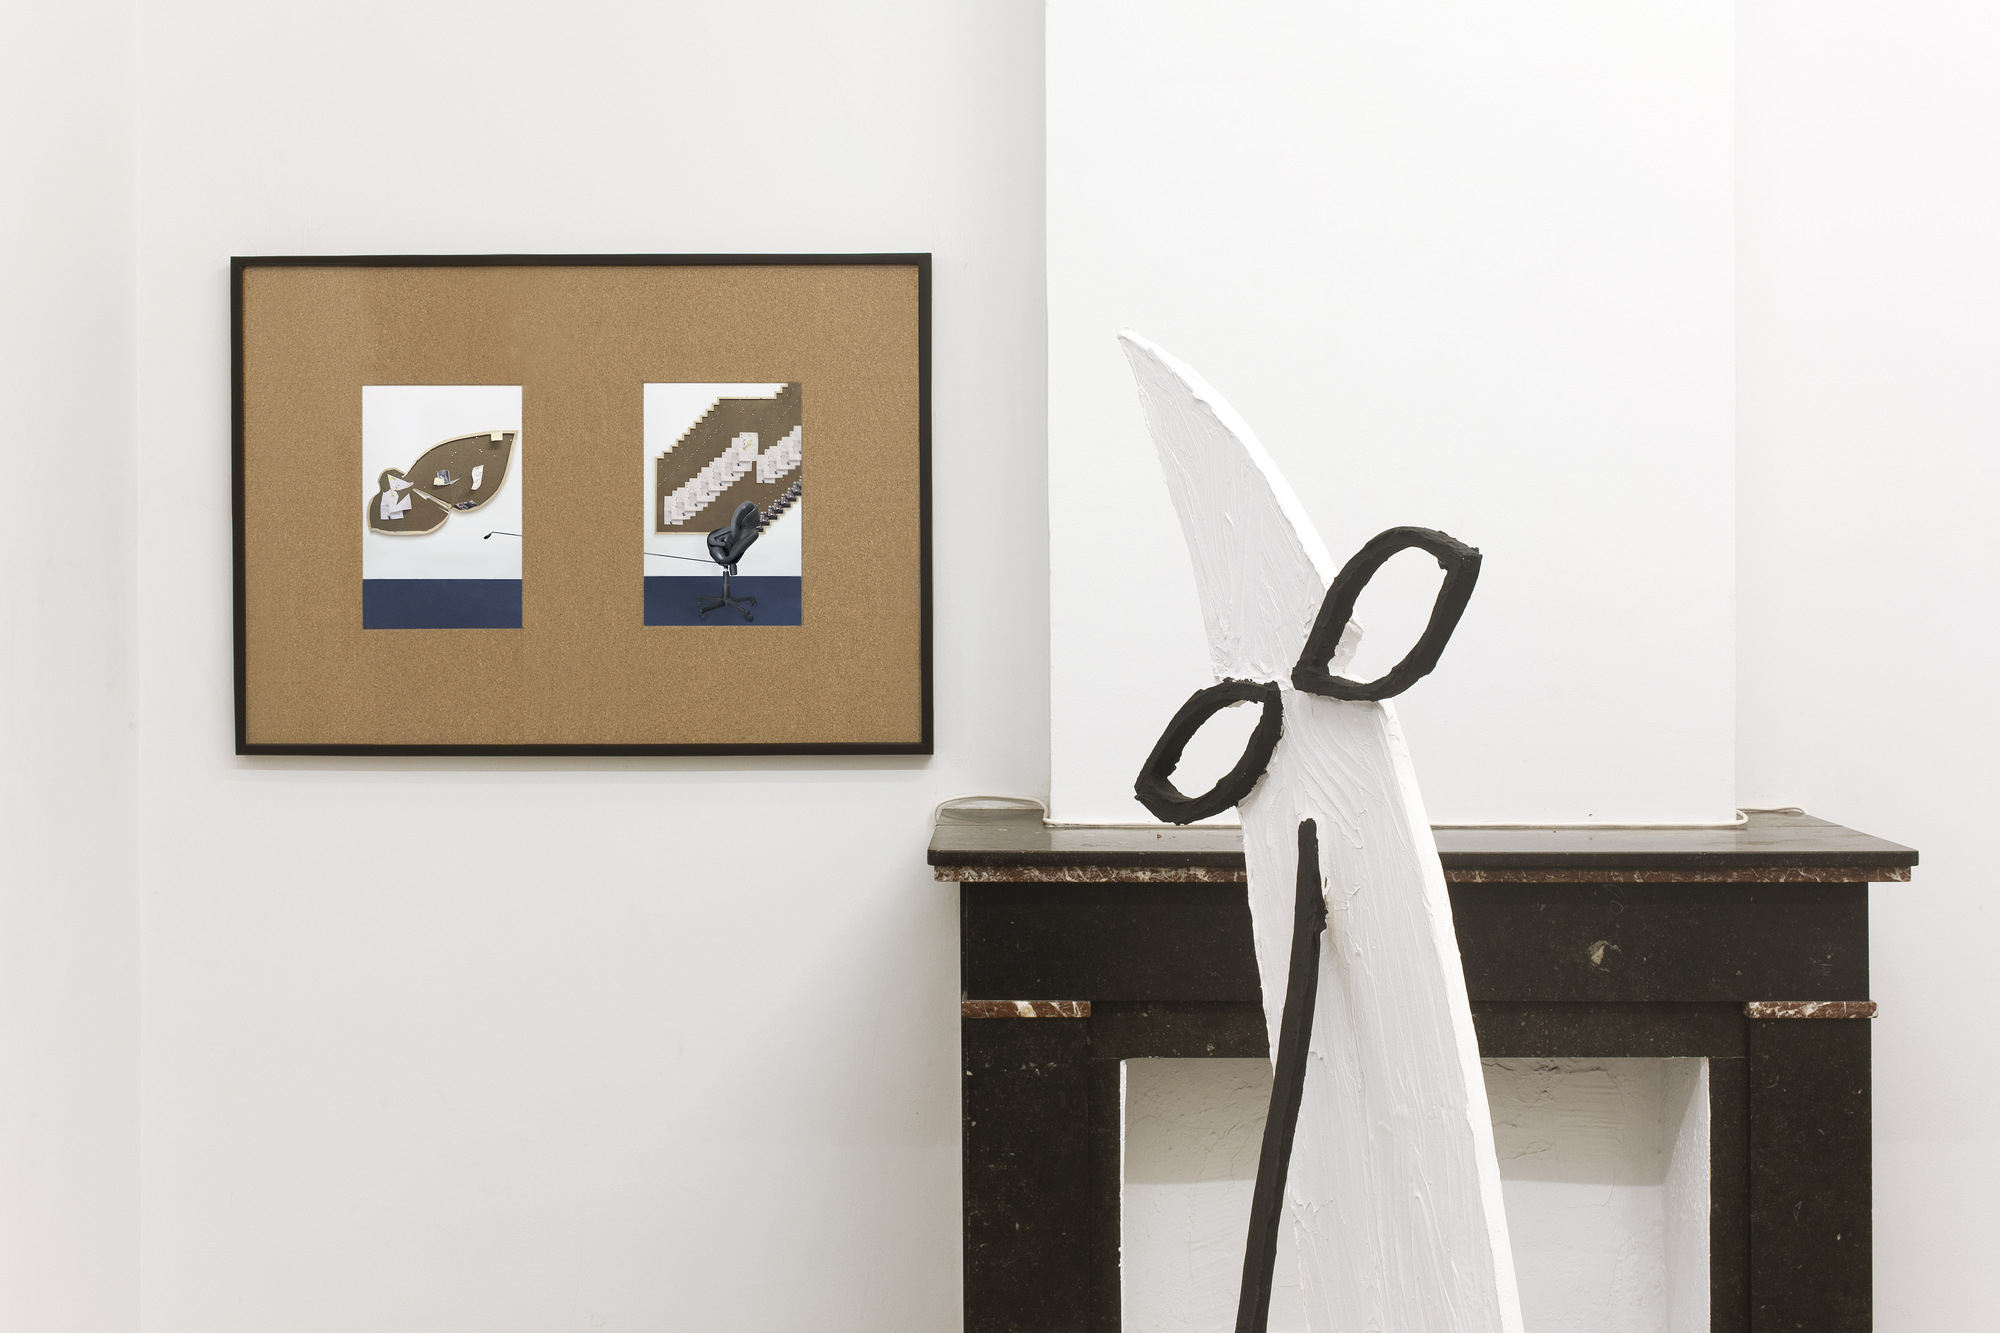 15 - 'Everything you need to bring bathrooms to a shine' at Deborah Bowmann